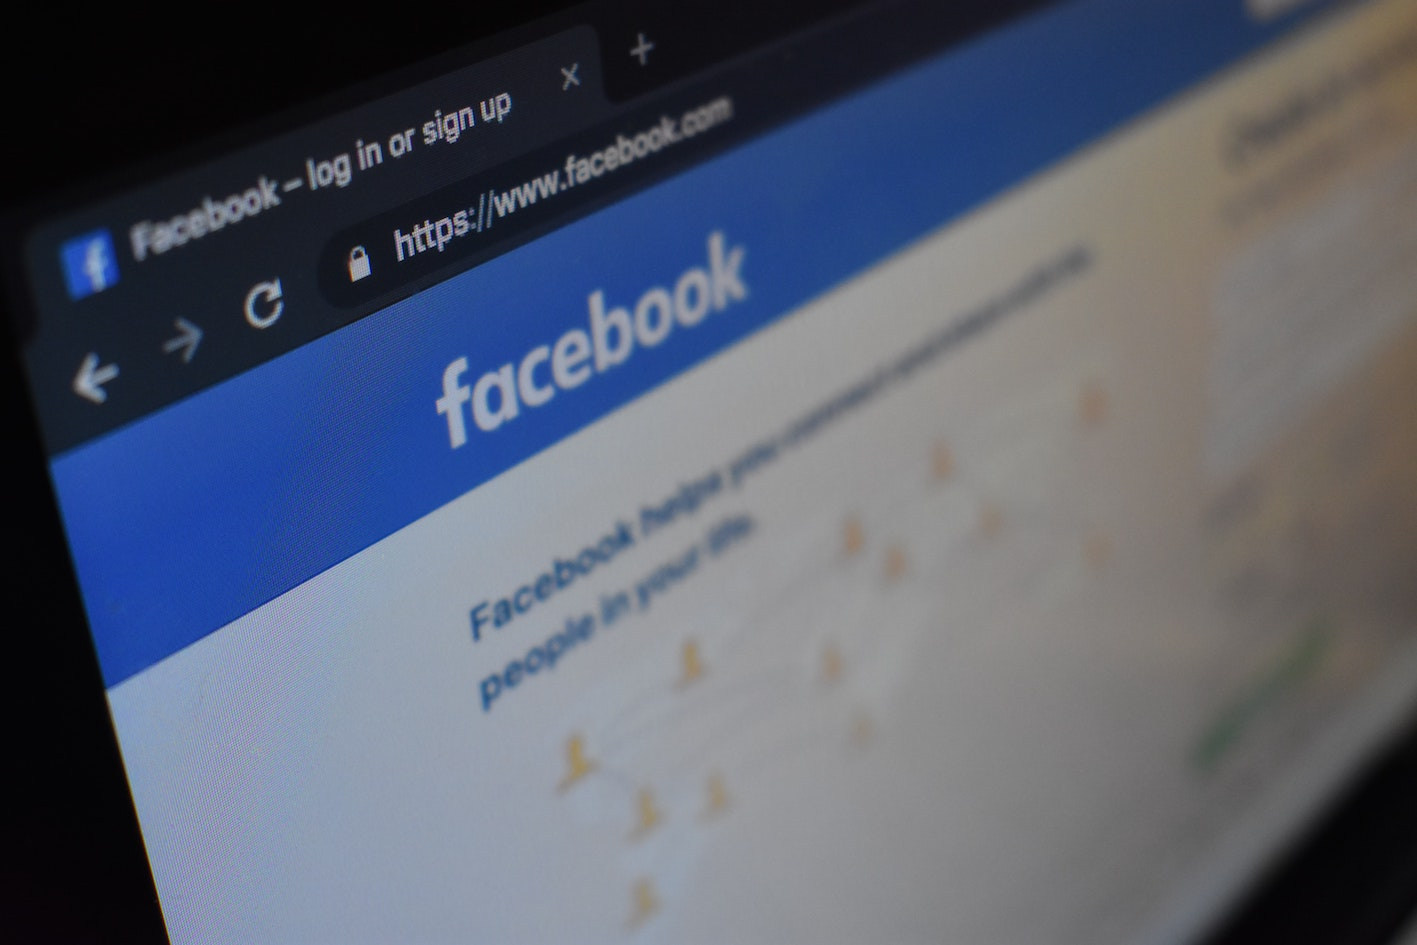 How to collect email addresses on Facebook